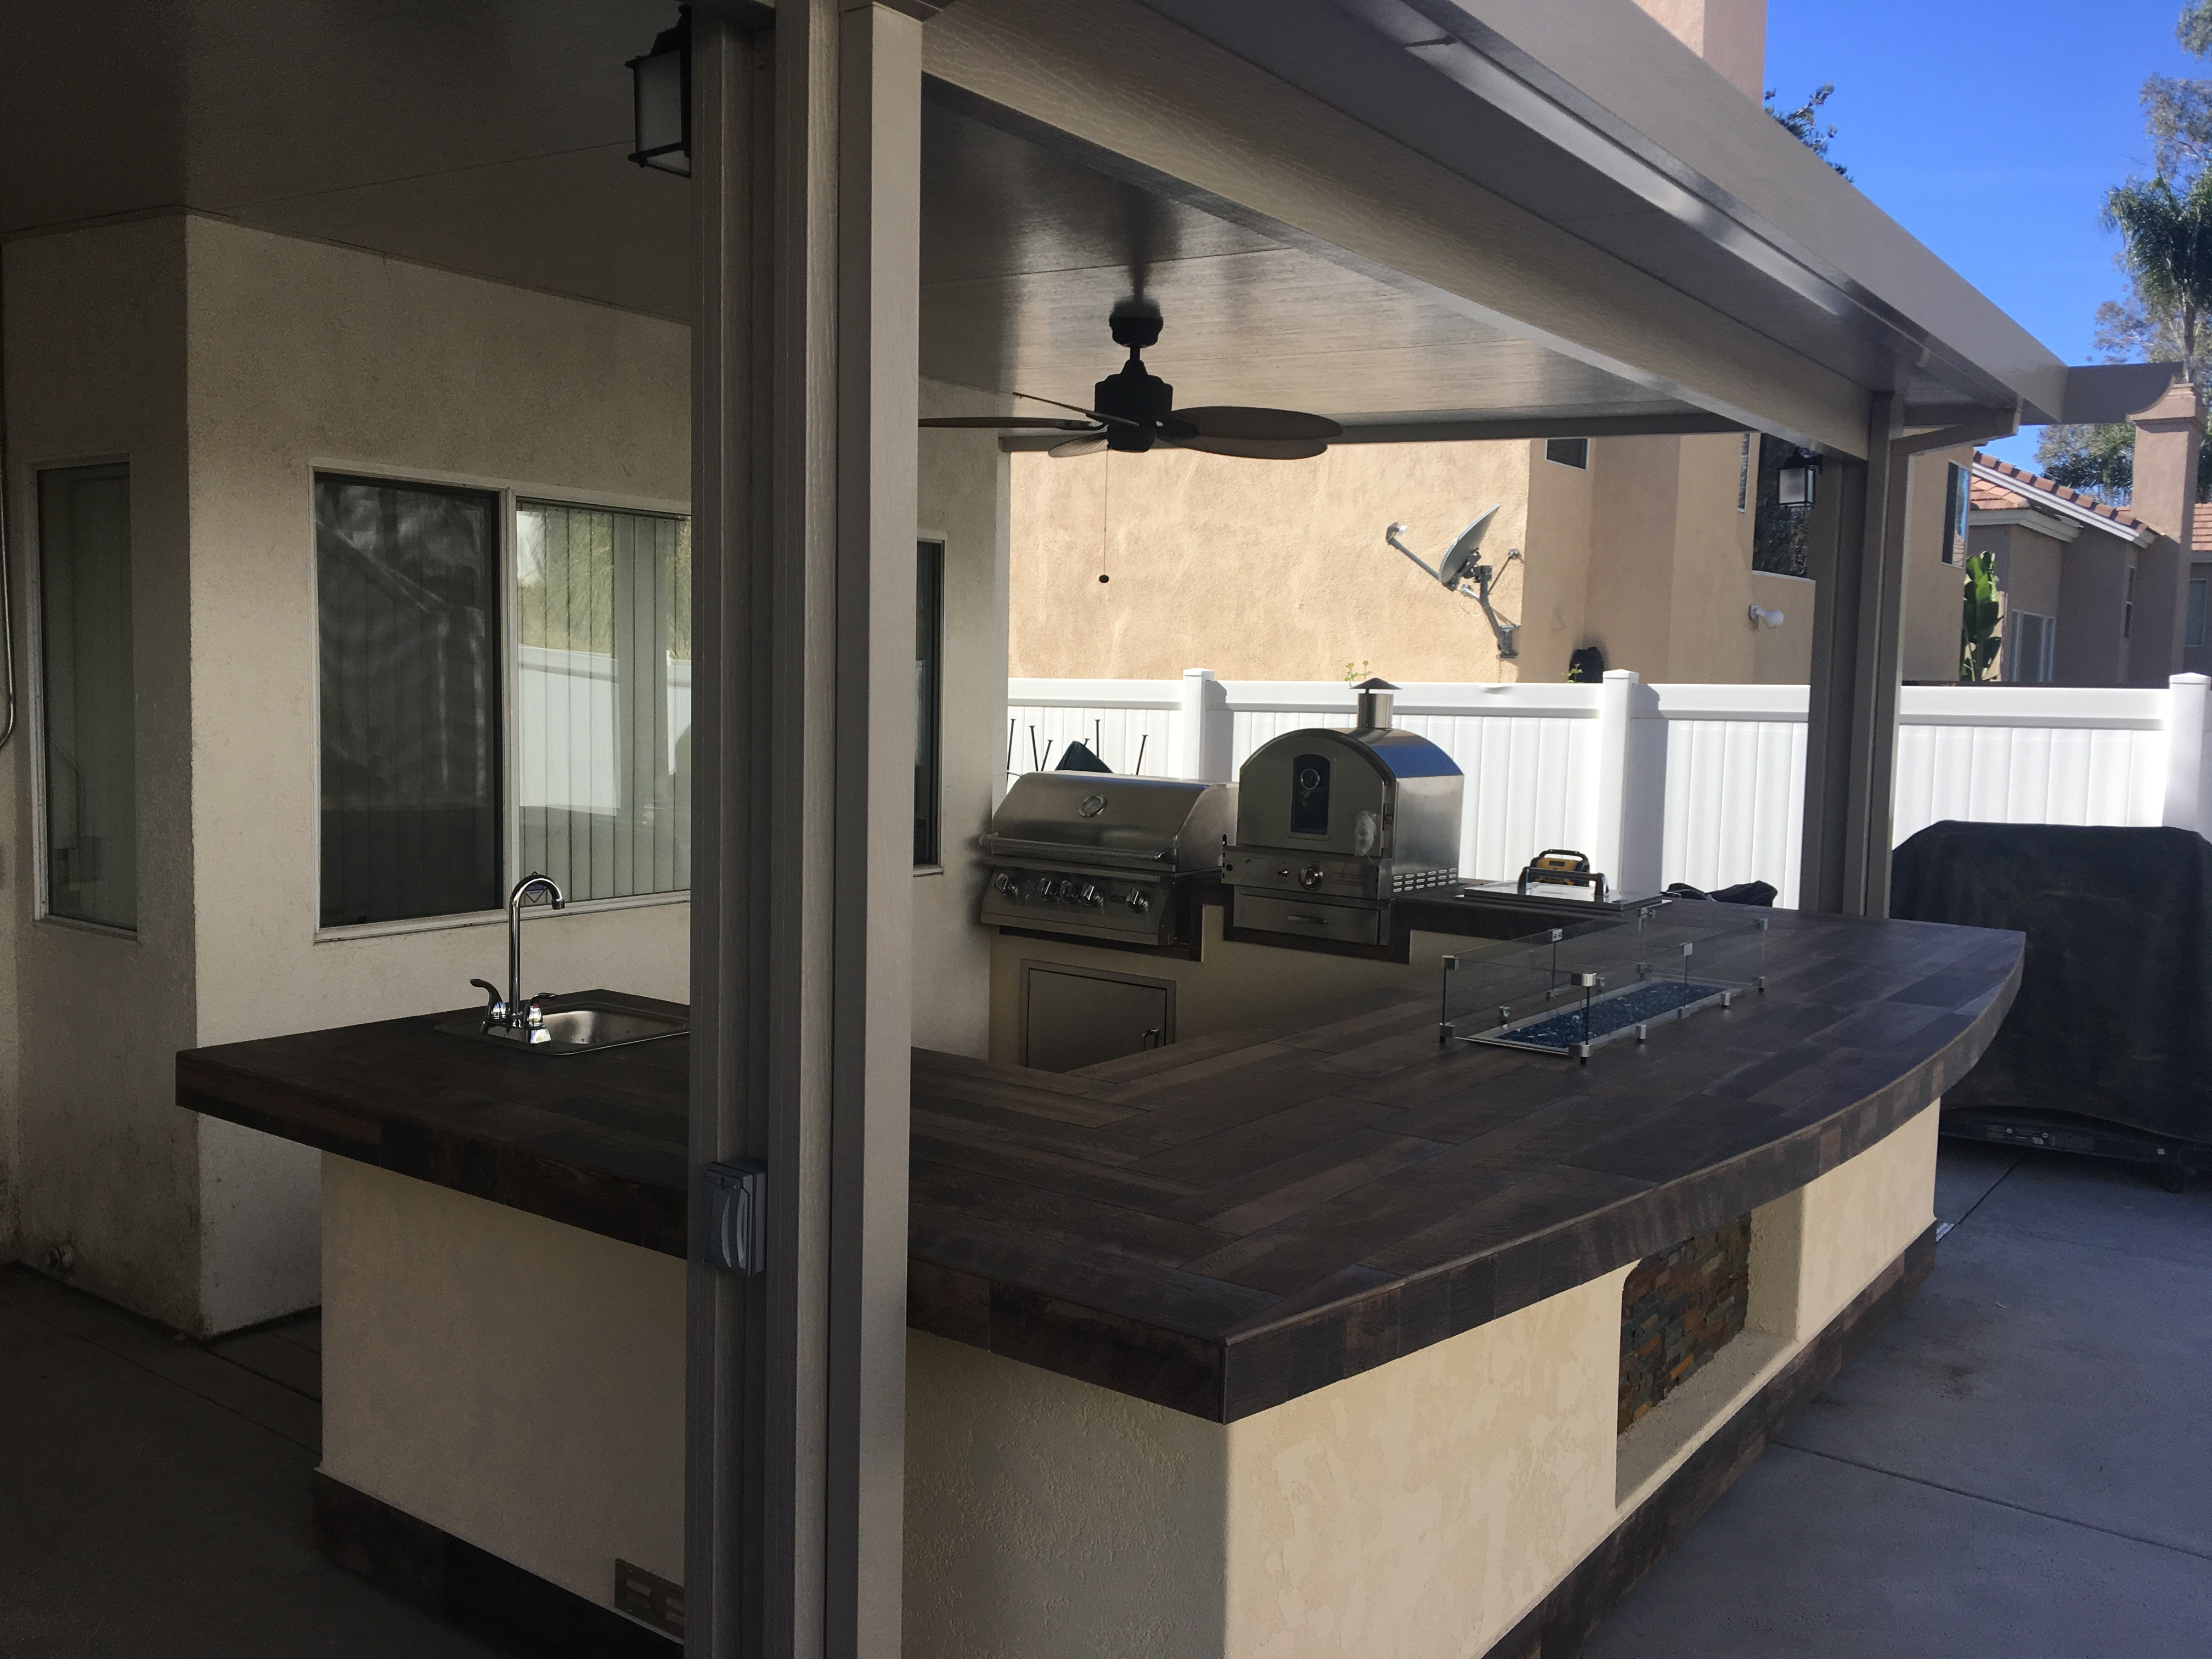 Backyard Makeover - SO CAL CONTRACTORS & REMODELING, INC. on Backyard Renovation Companies id=79991